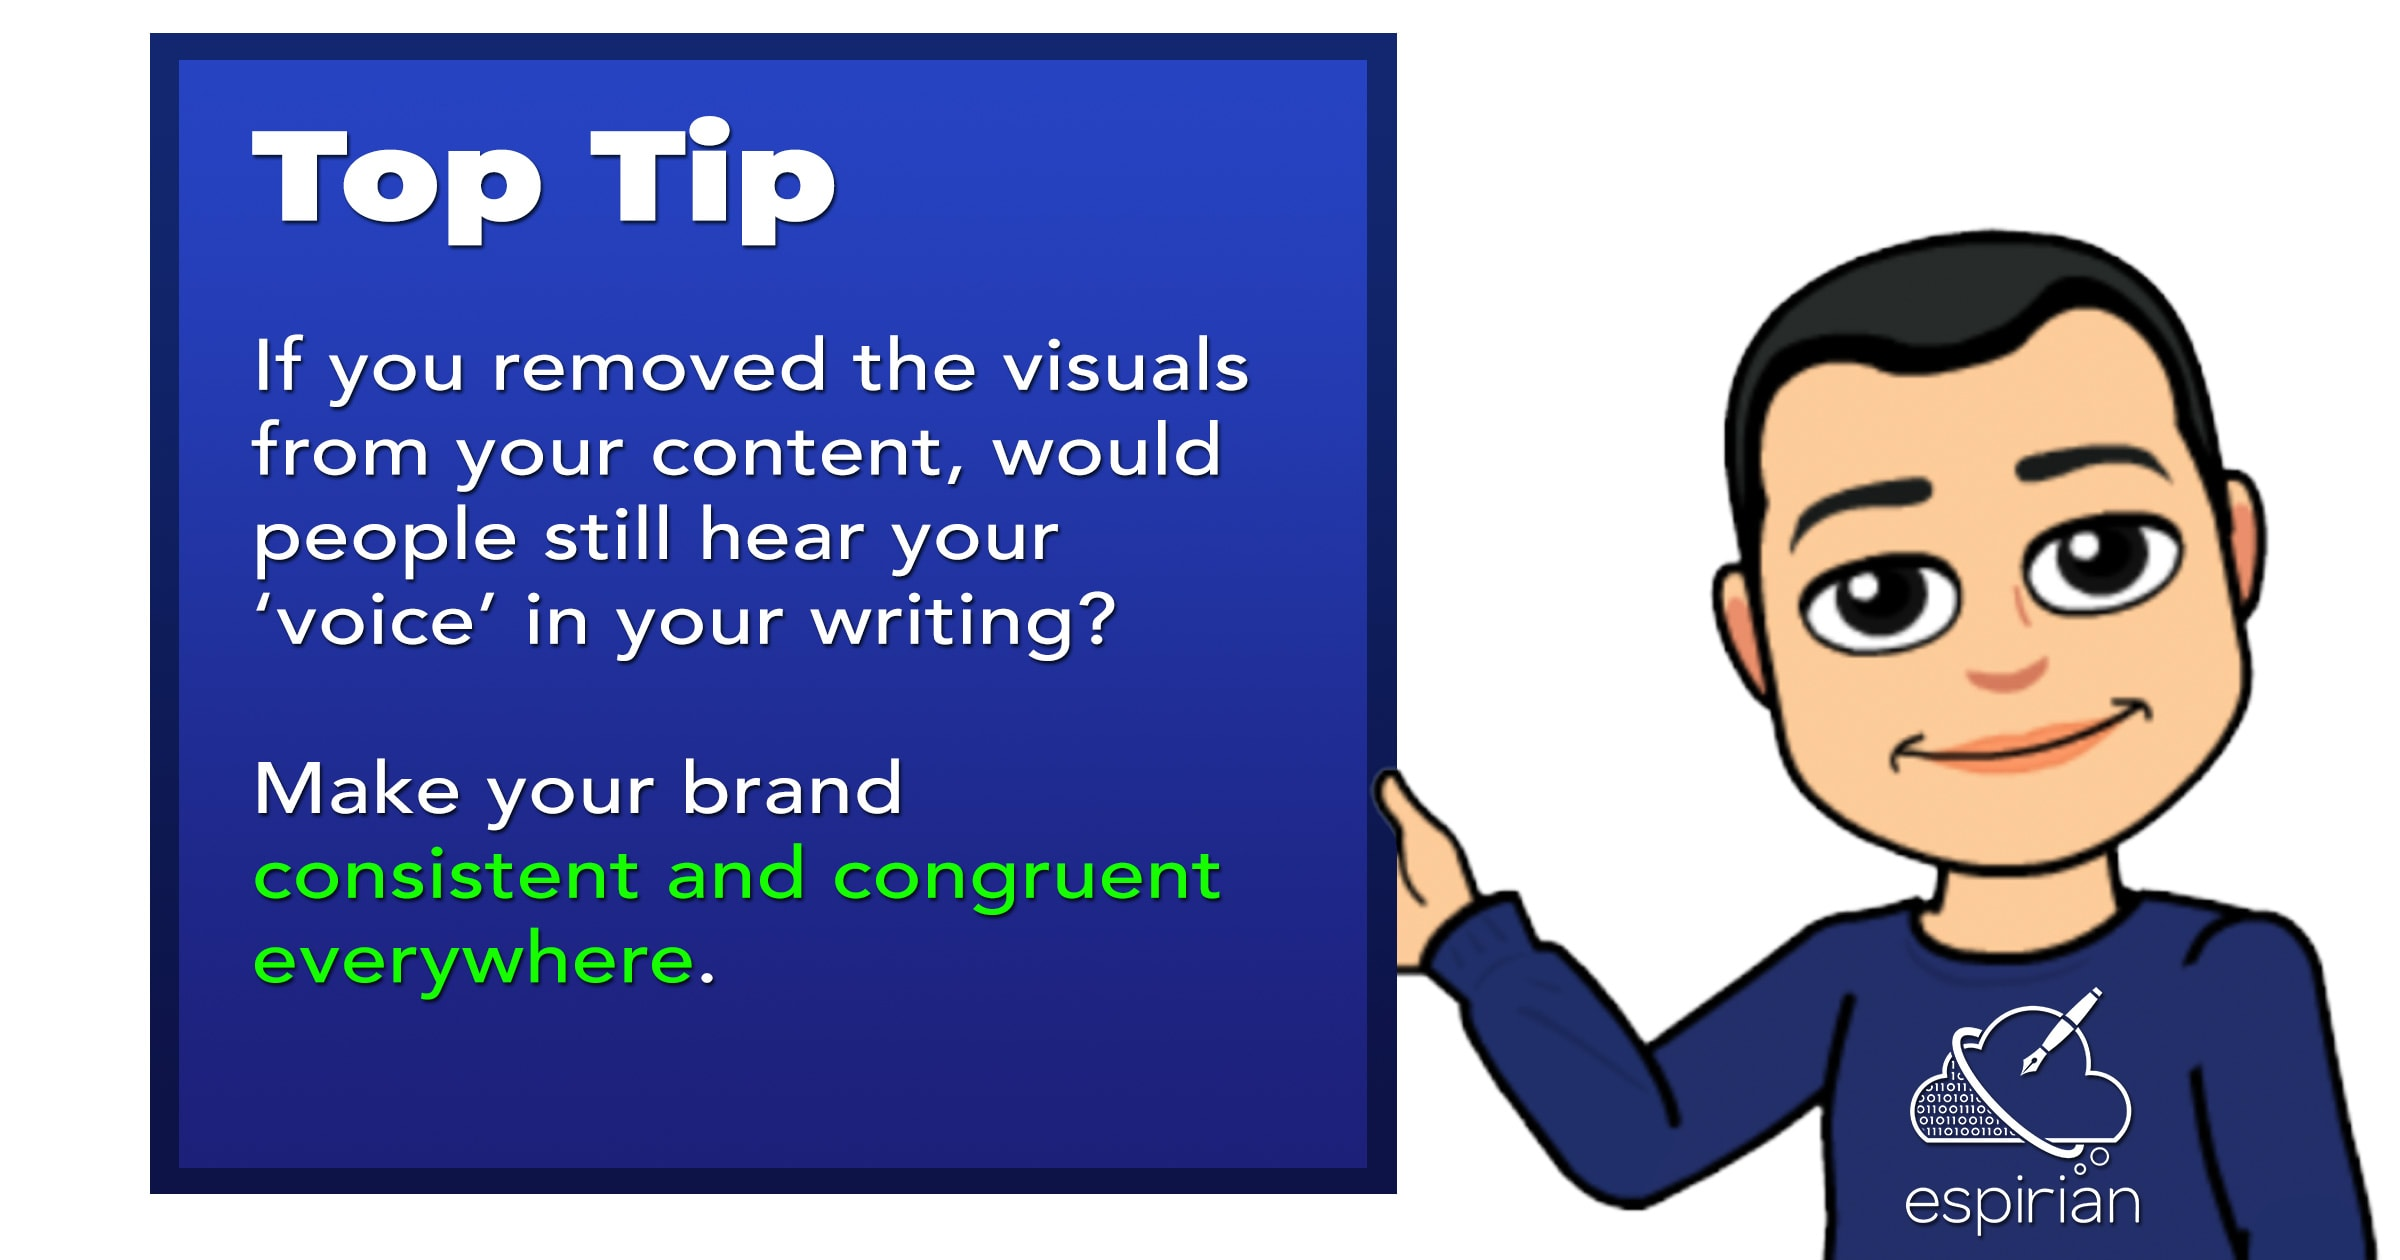 Top tip: be consistent and congruent in all your content